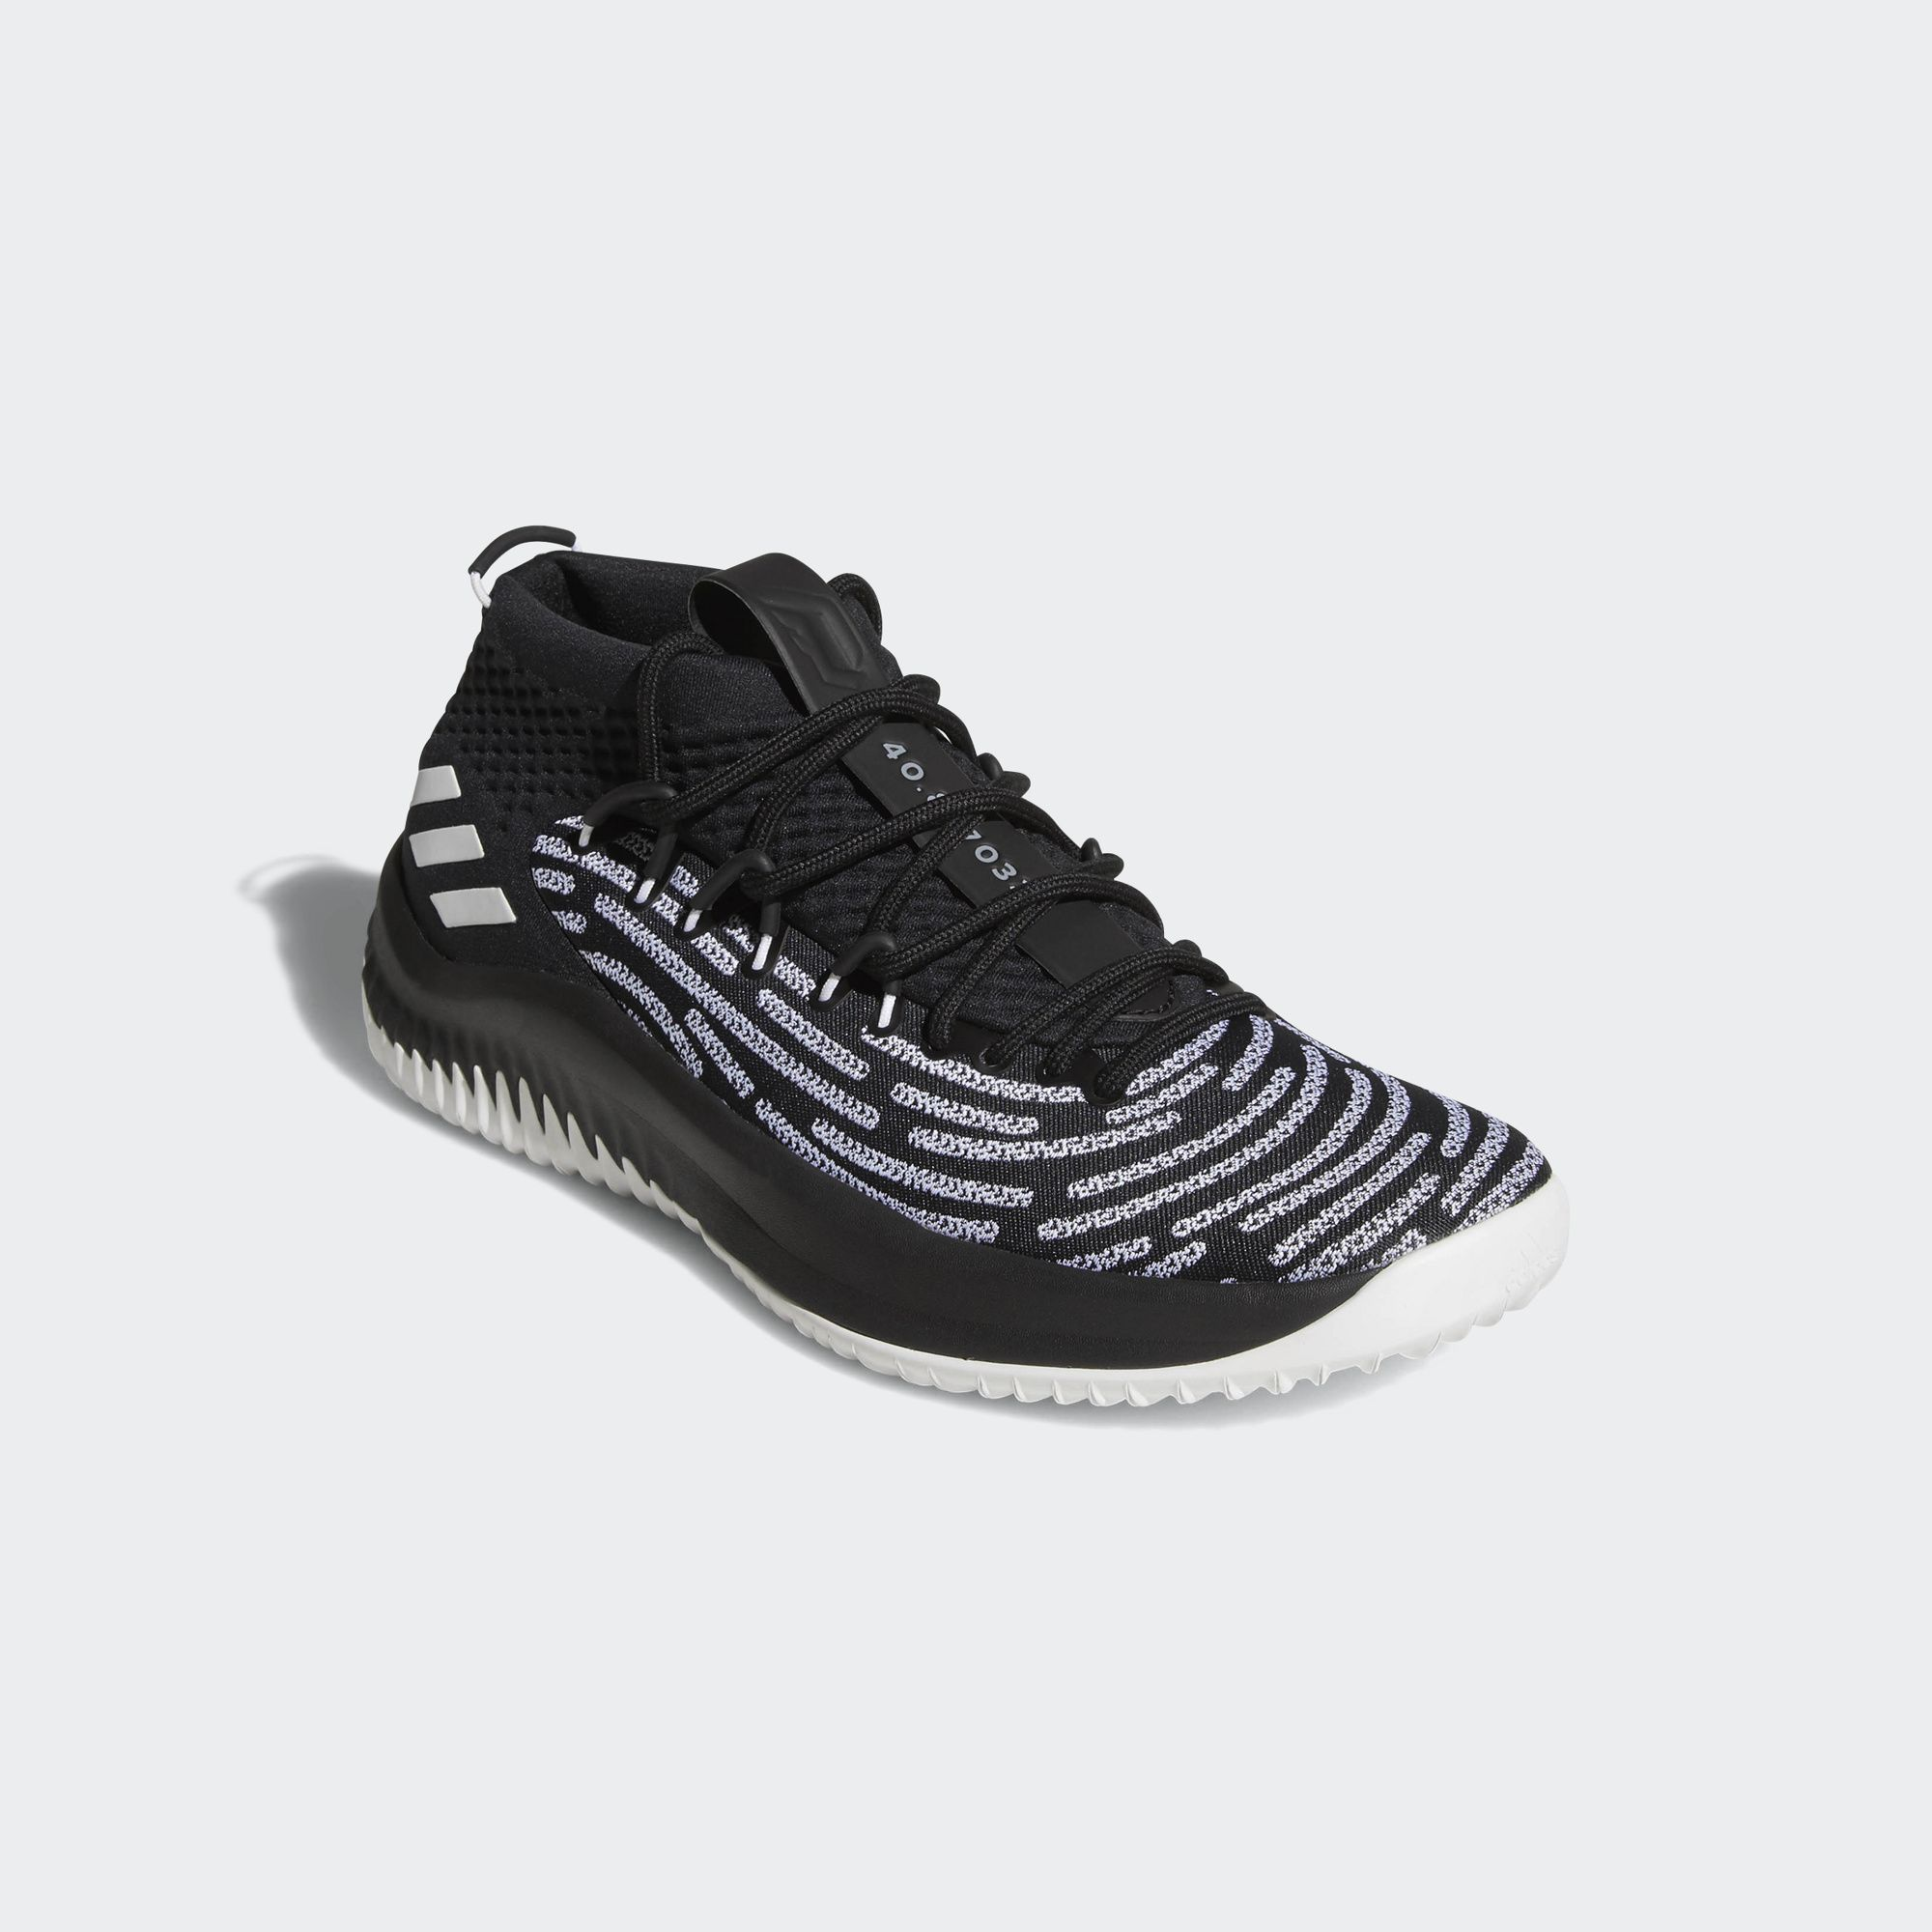 736cb9596099 adidas-dame-4-black-white-1 - WearTesters